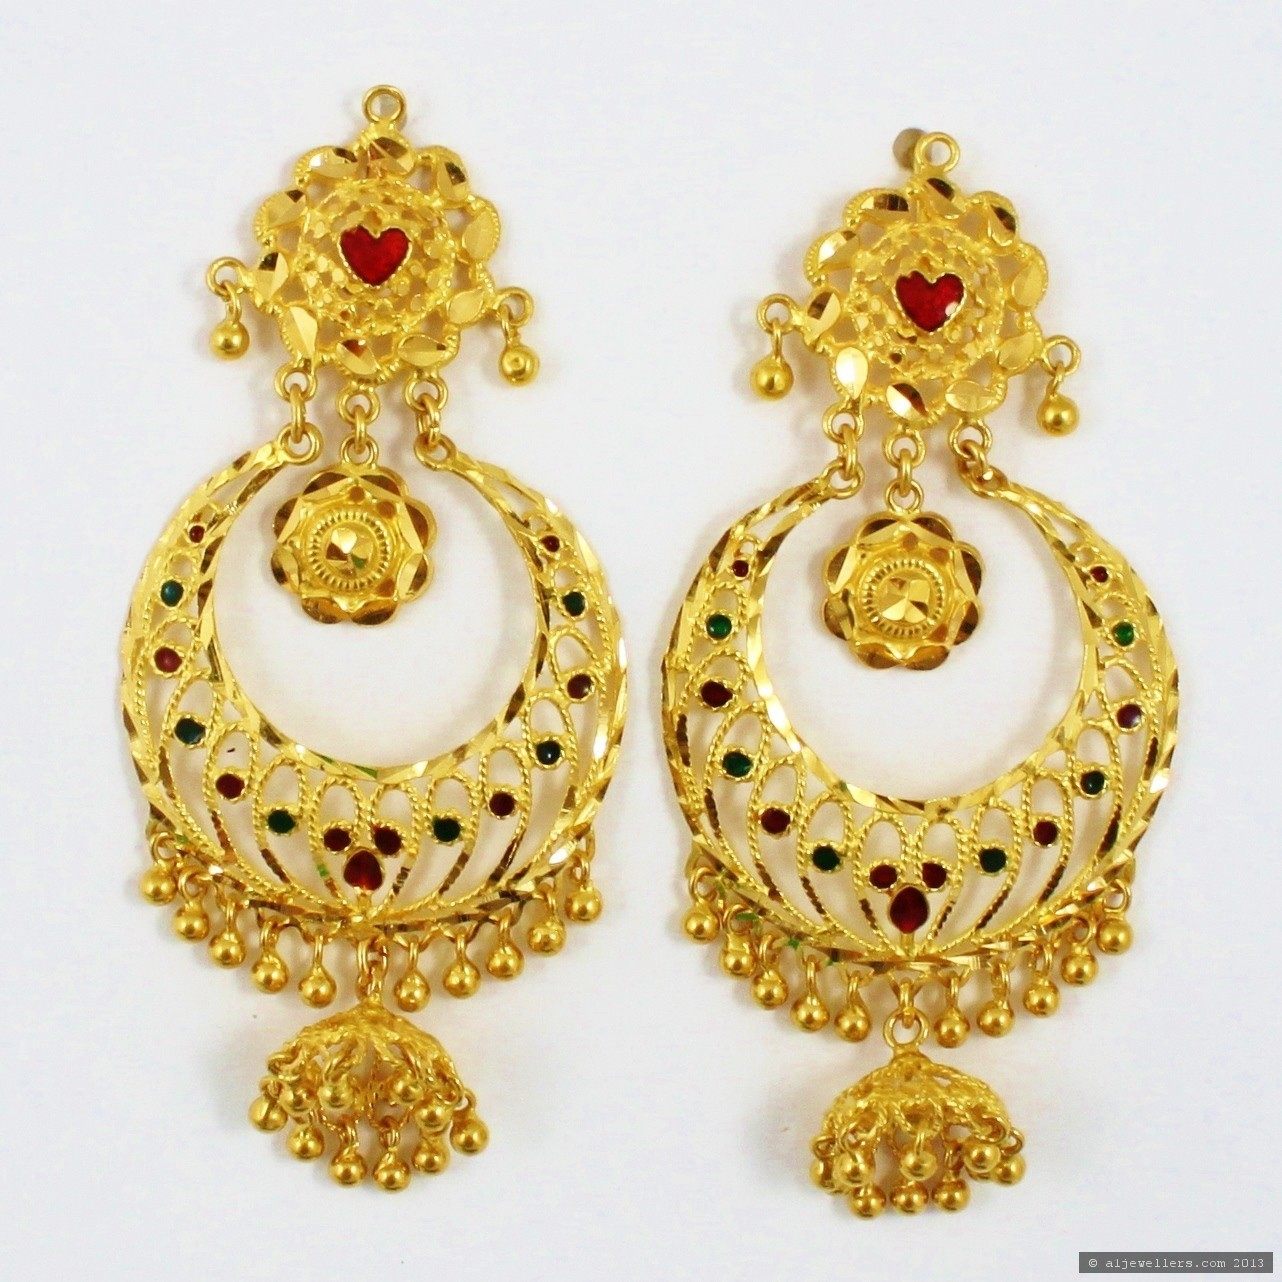 the gallery for gt indian jewellery earrings designs